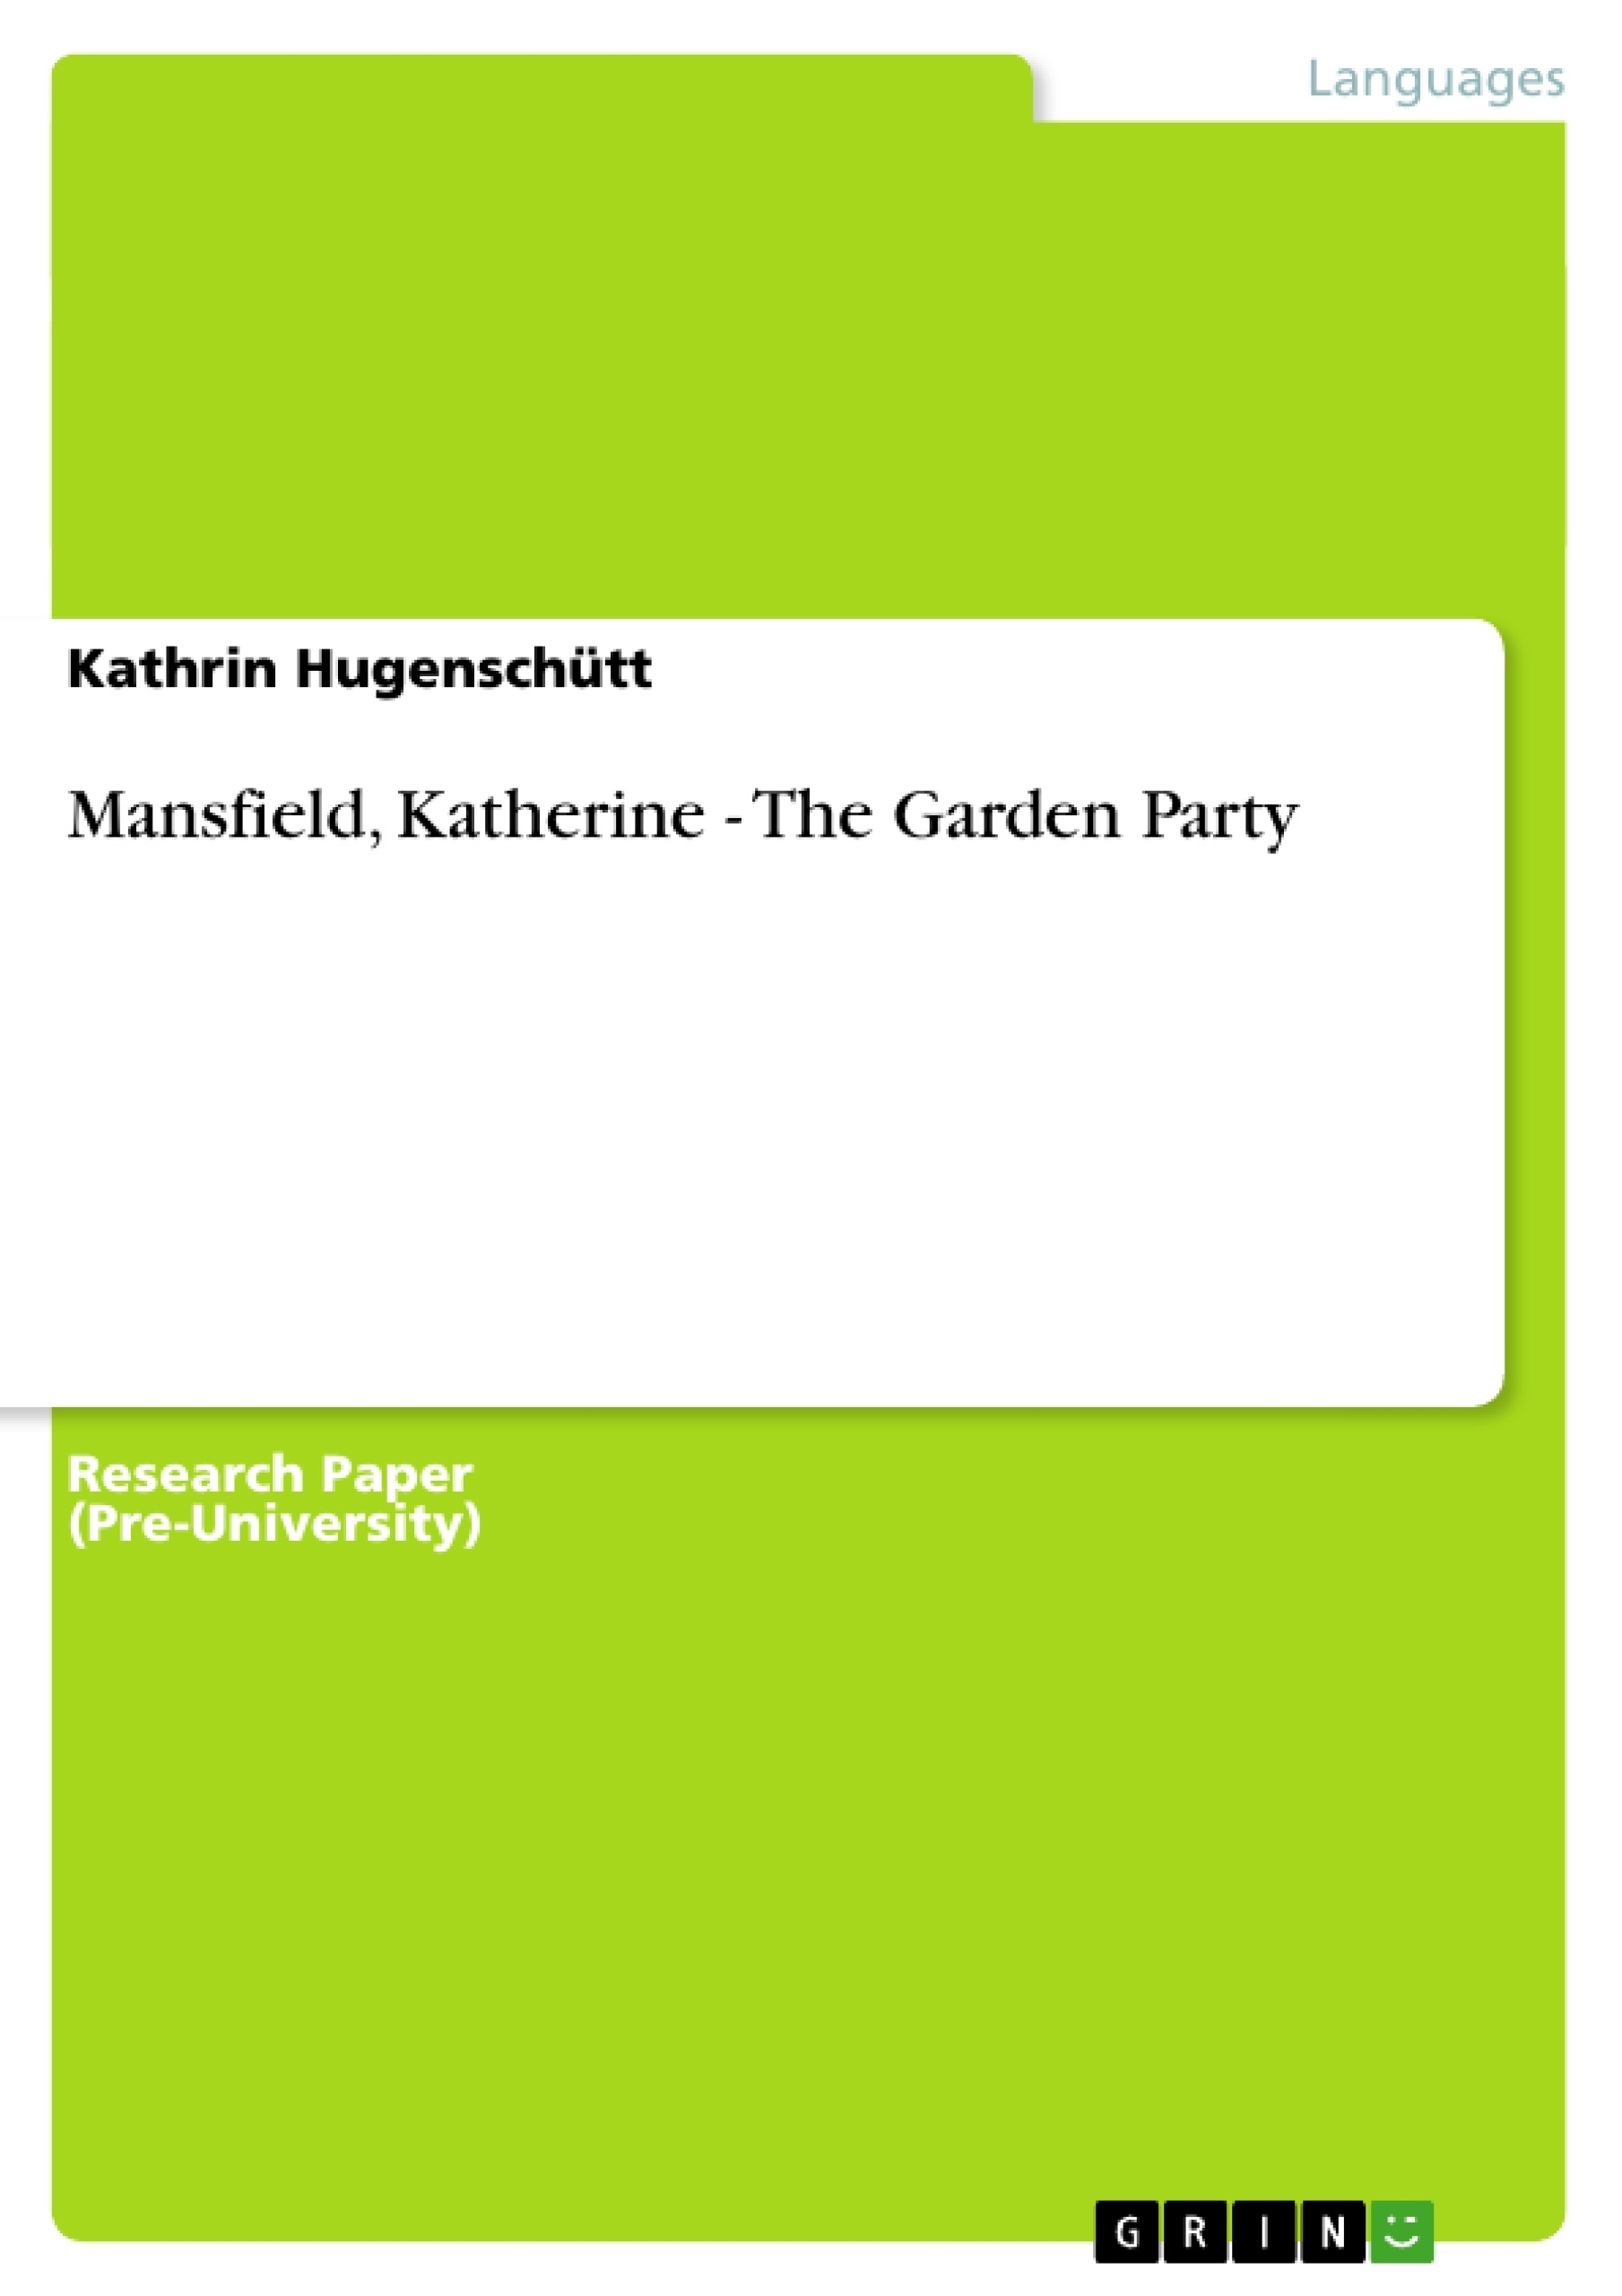 Title: Mansfield, Katherine - The Garden Party